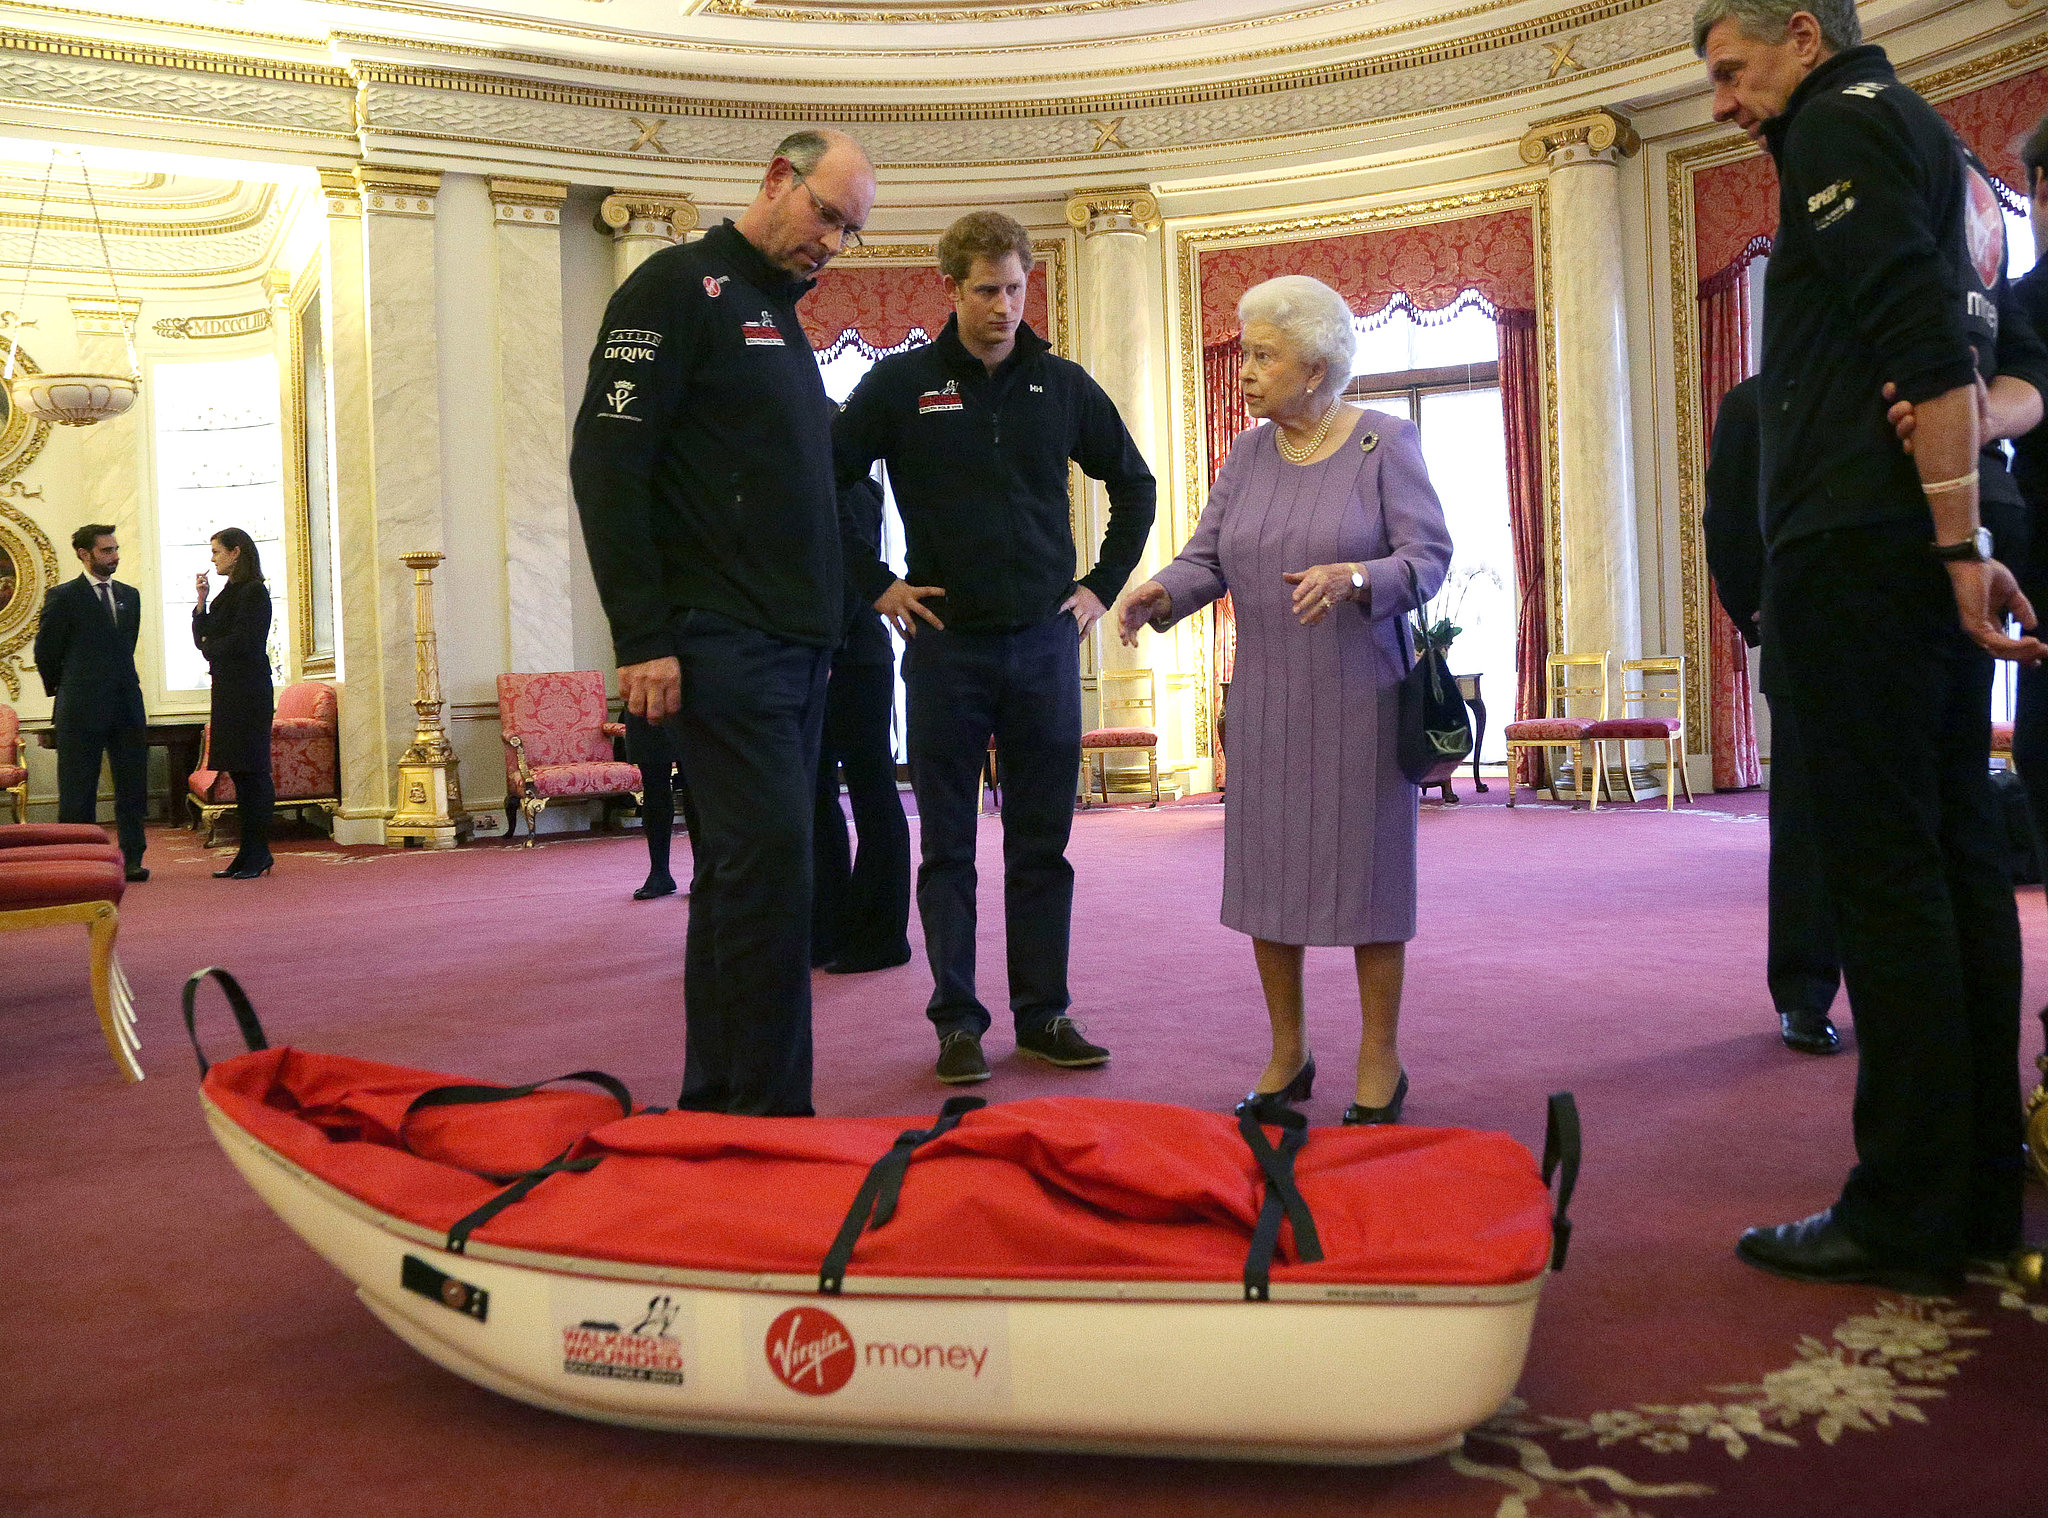 Prince Harry joined his fellow Walking With the Wounded South Pole Allied Challenge trekkers to meet with Queen Elizabeth II in Buckingham Palace on Thursday.